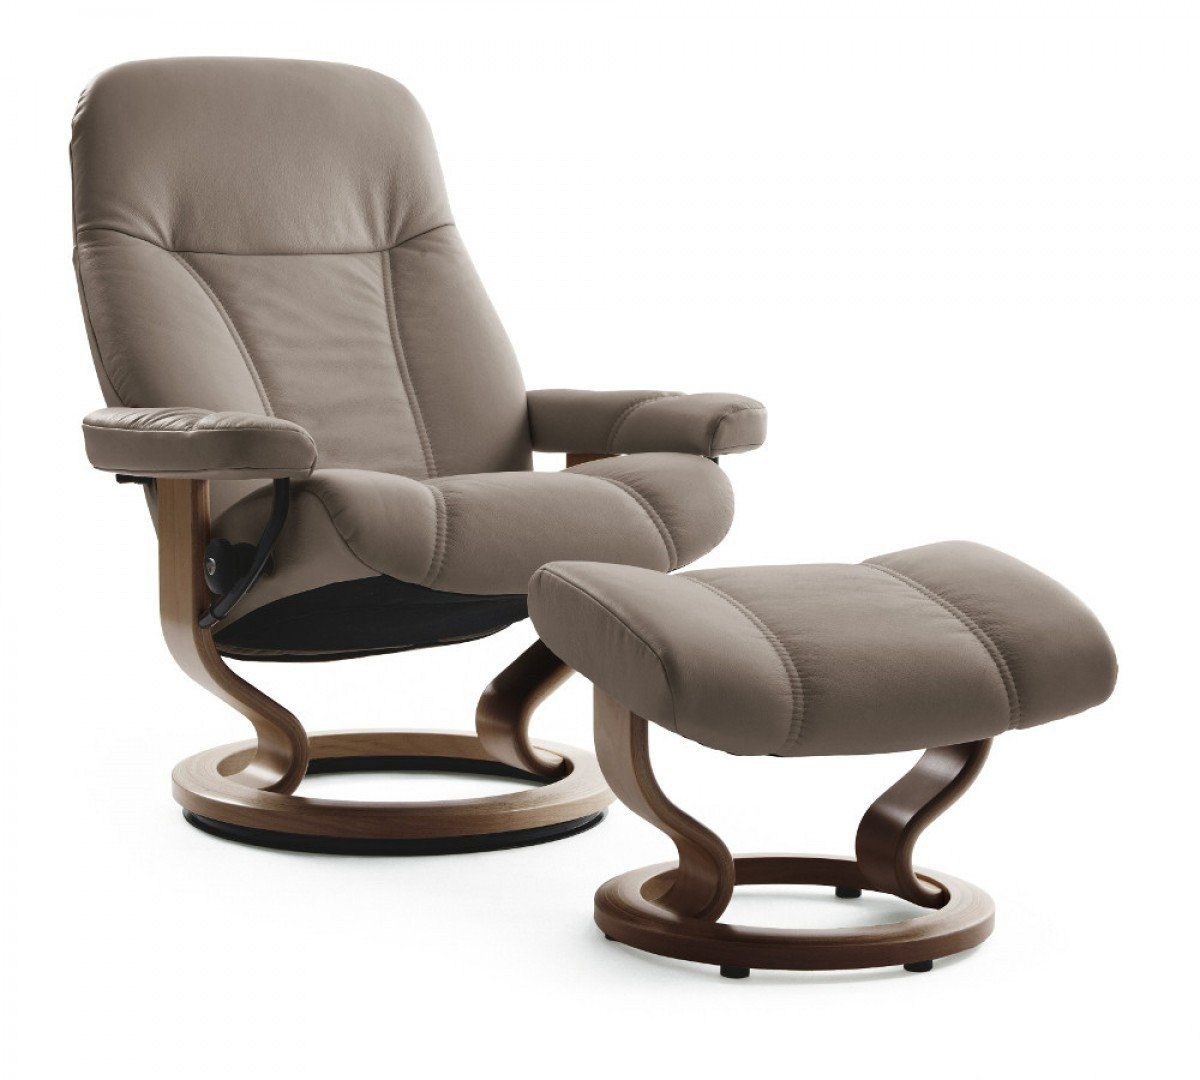 Stressless Ruby Epitomising The Very Essence Of Stressless Design The Simple